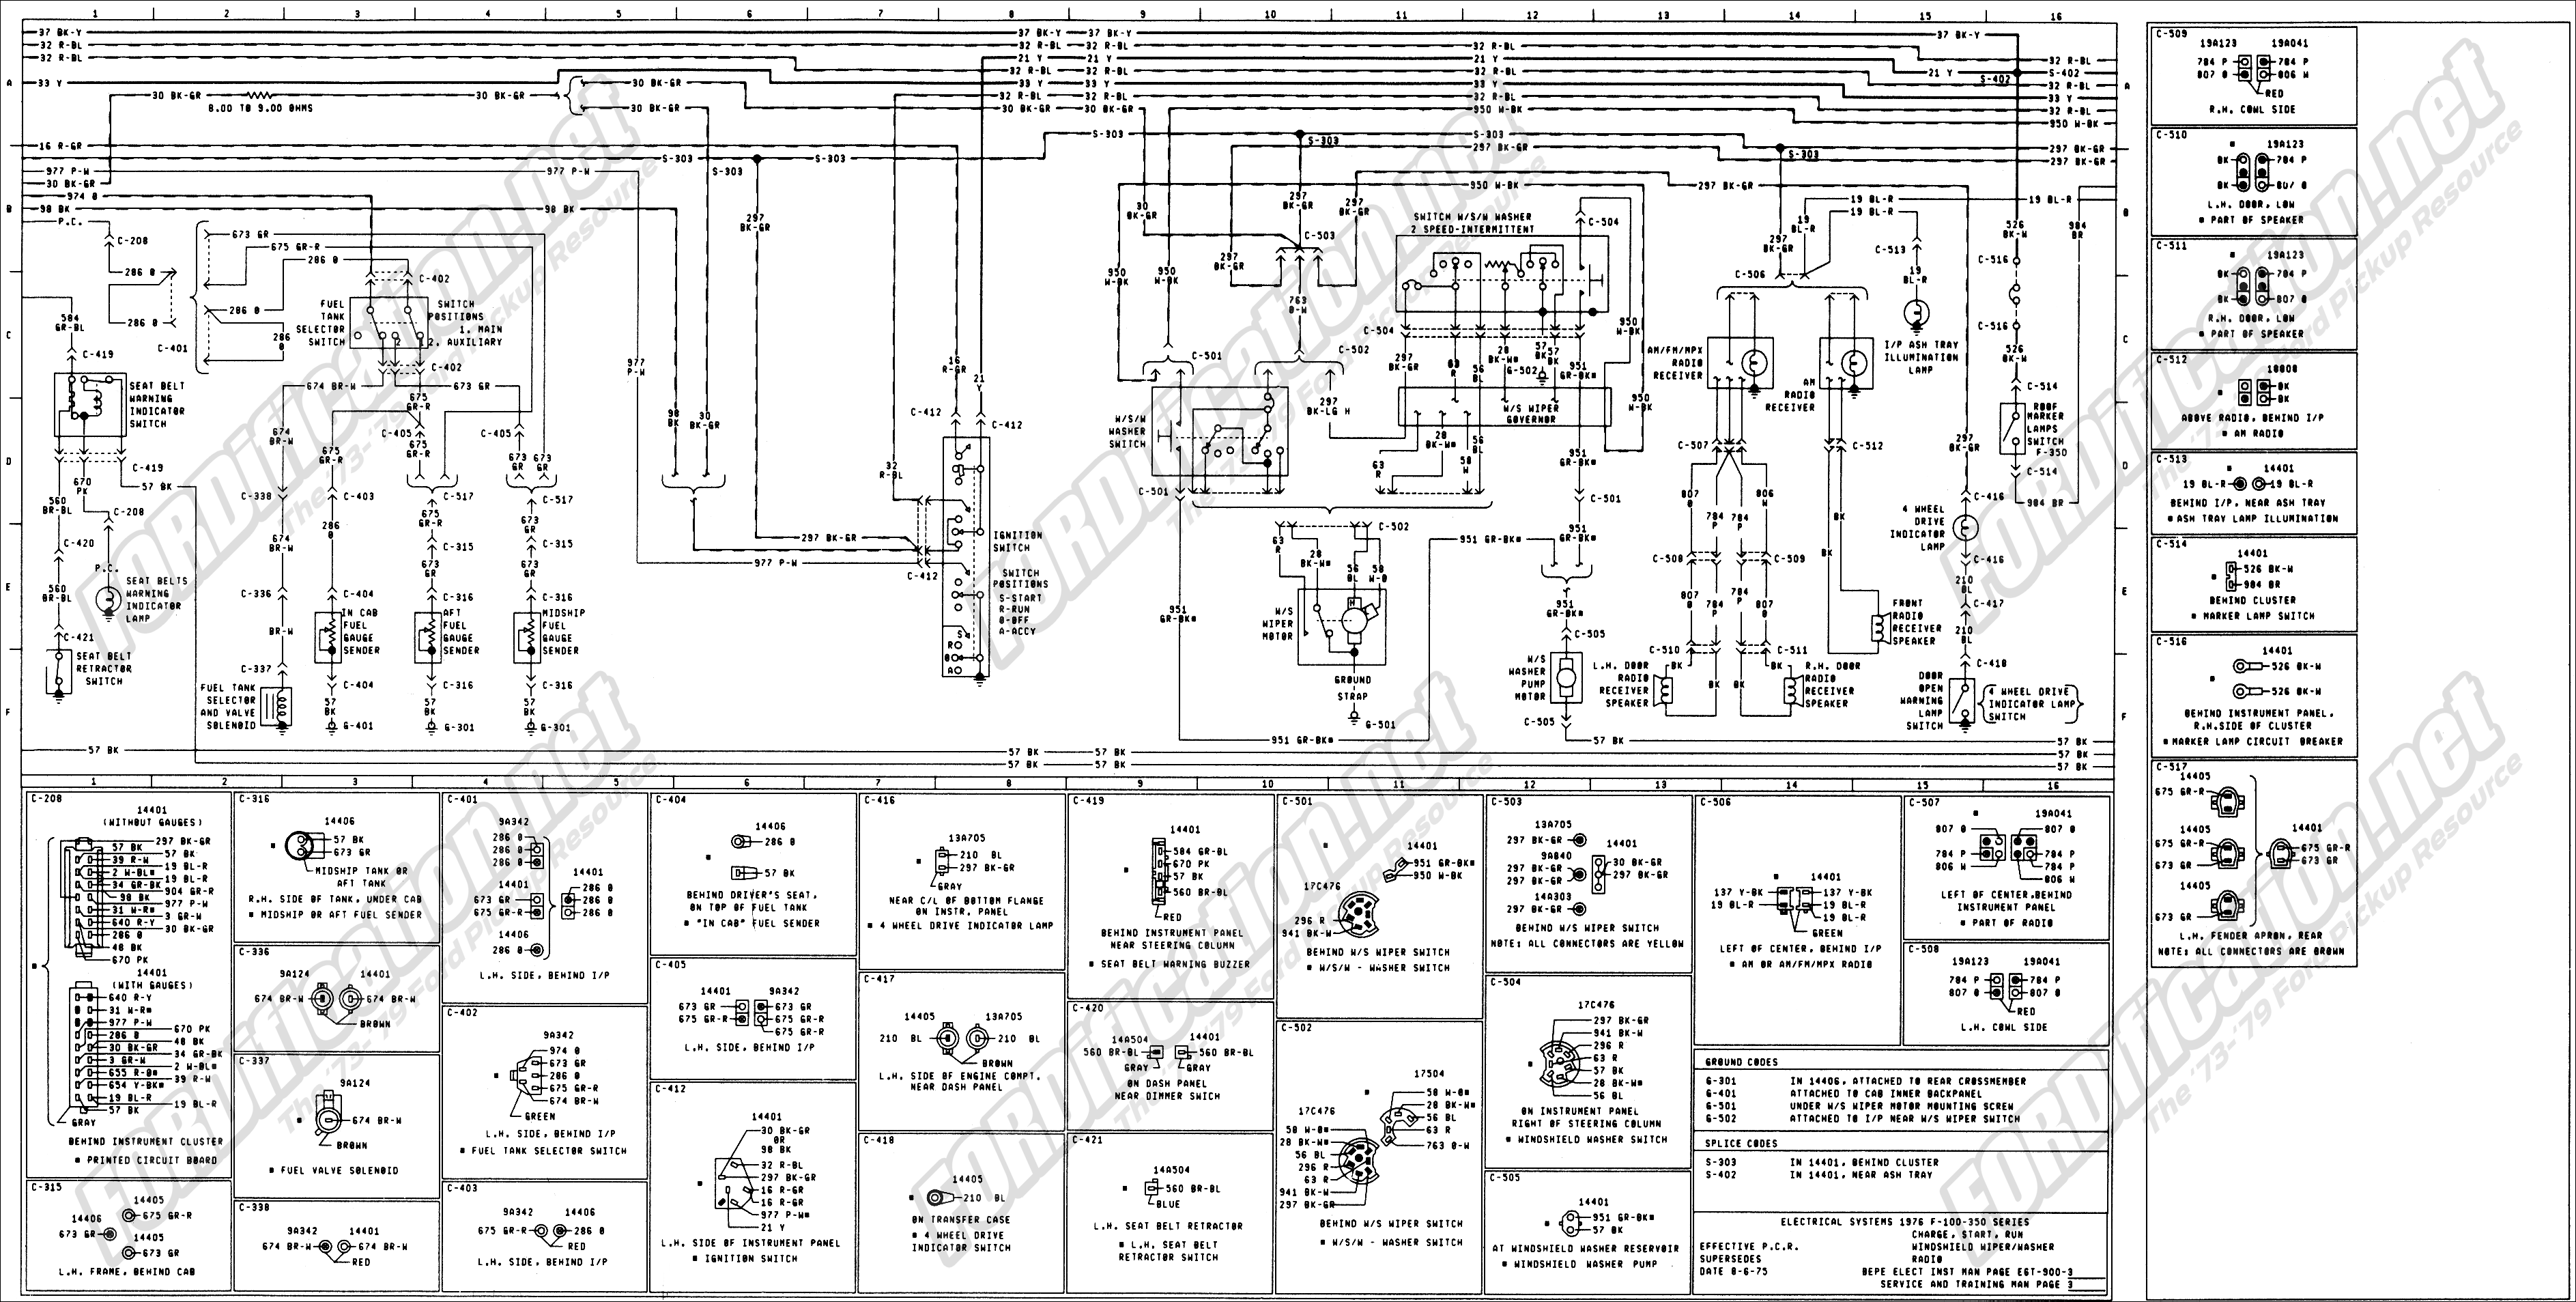 2006 f350 fuse diagram 2002 f250 fuse box flasher rain fuse8 klictravel nl 2006 ford f350 wiring diagram 2002 f250 fuse box flasher rain fuse8